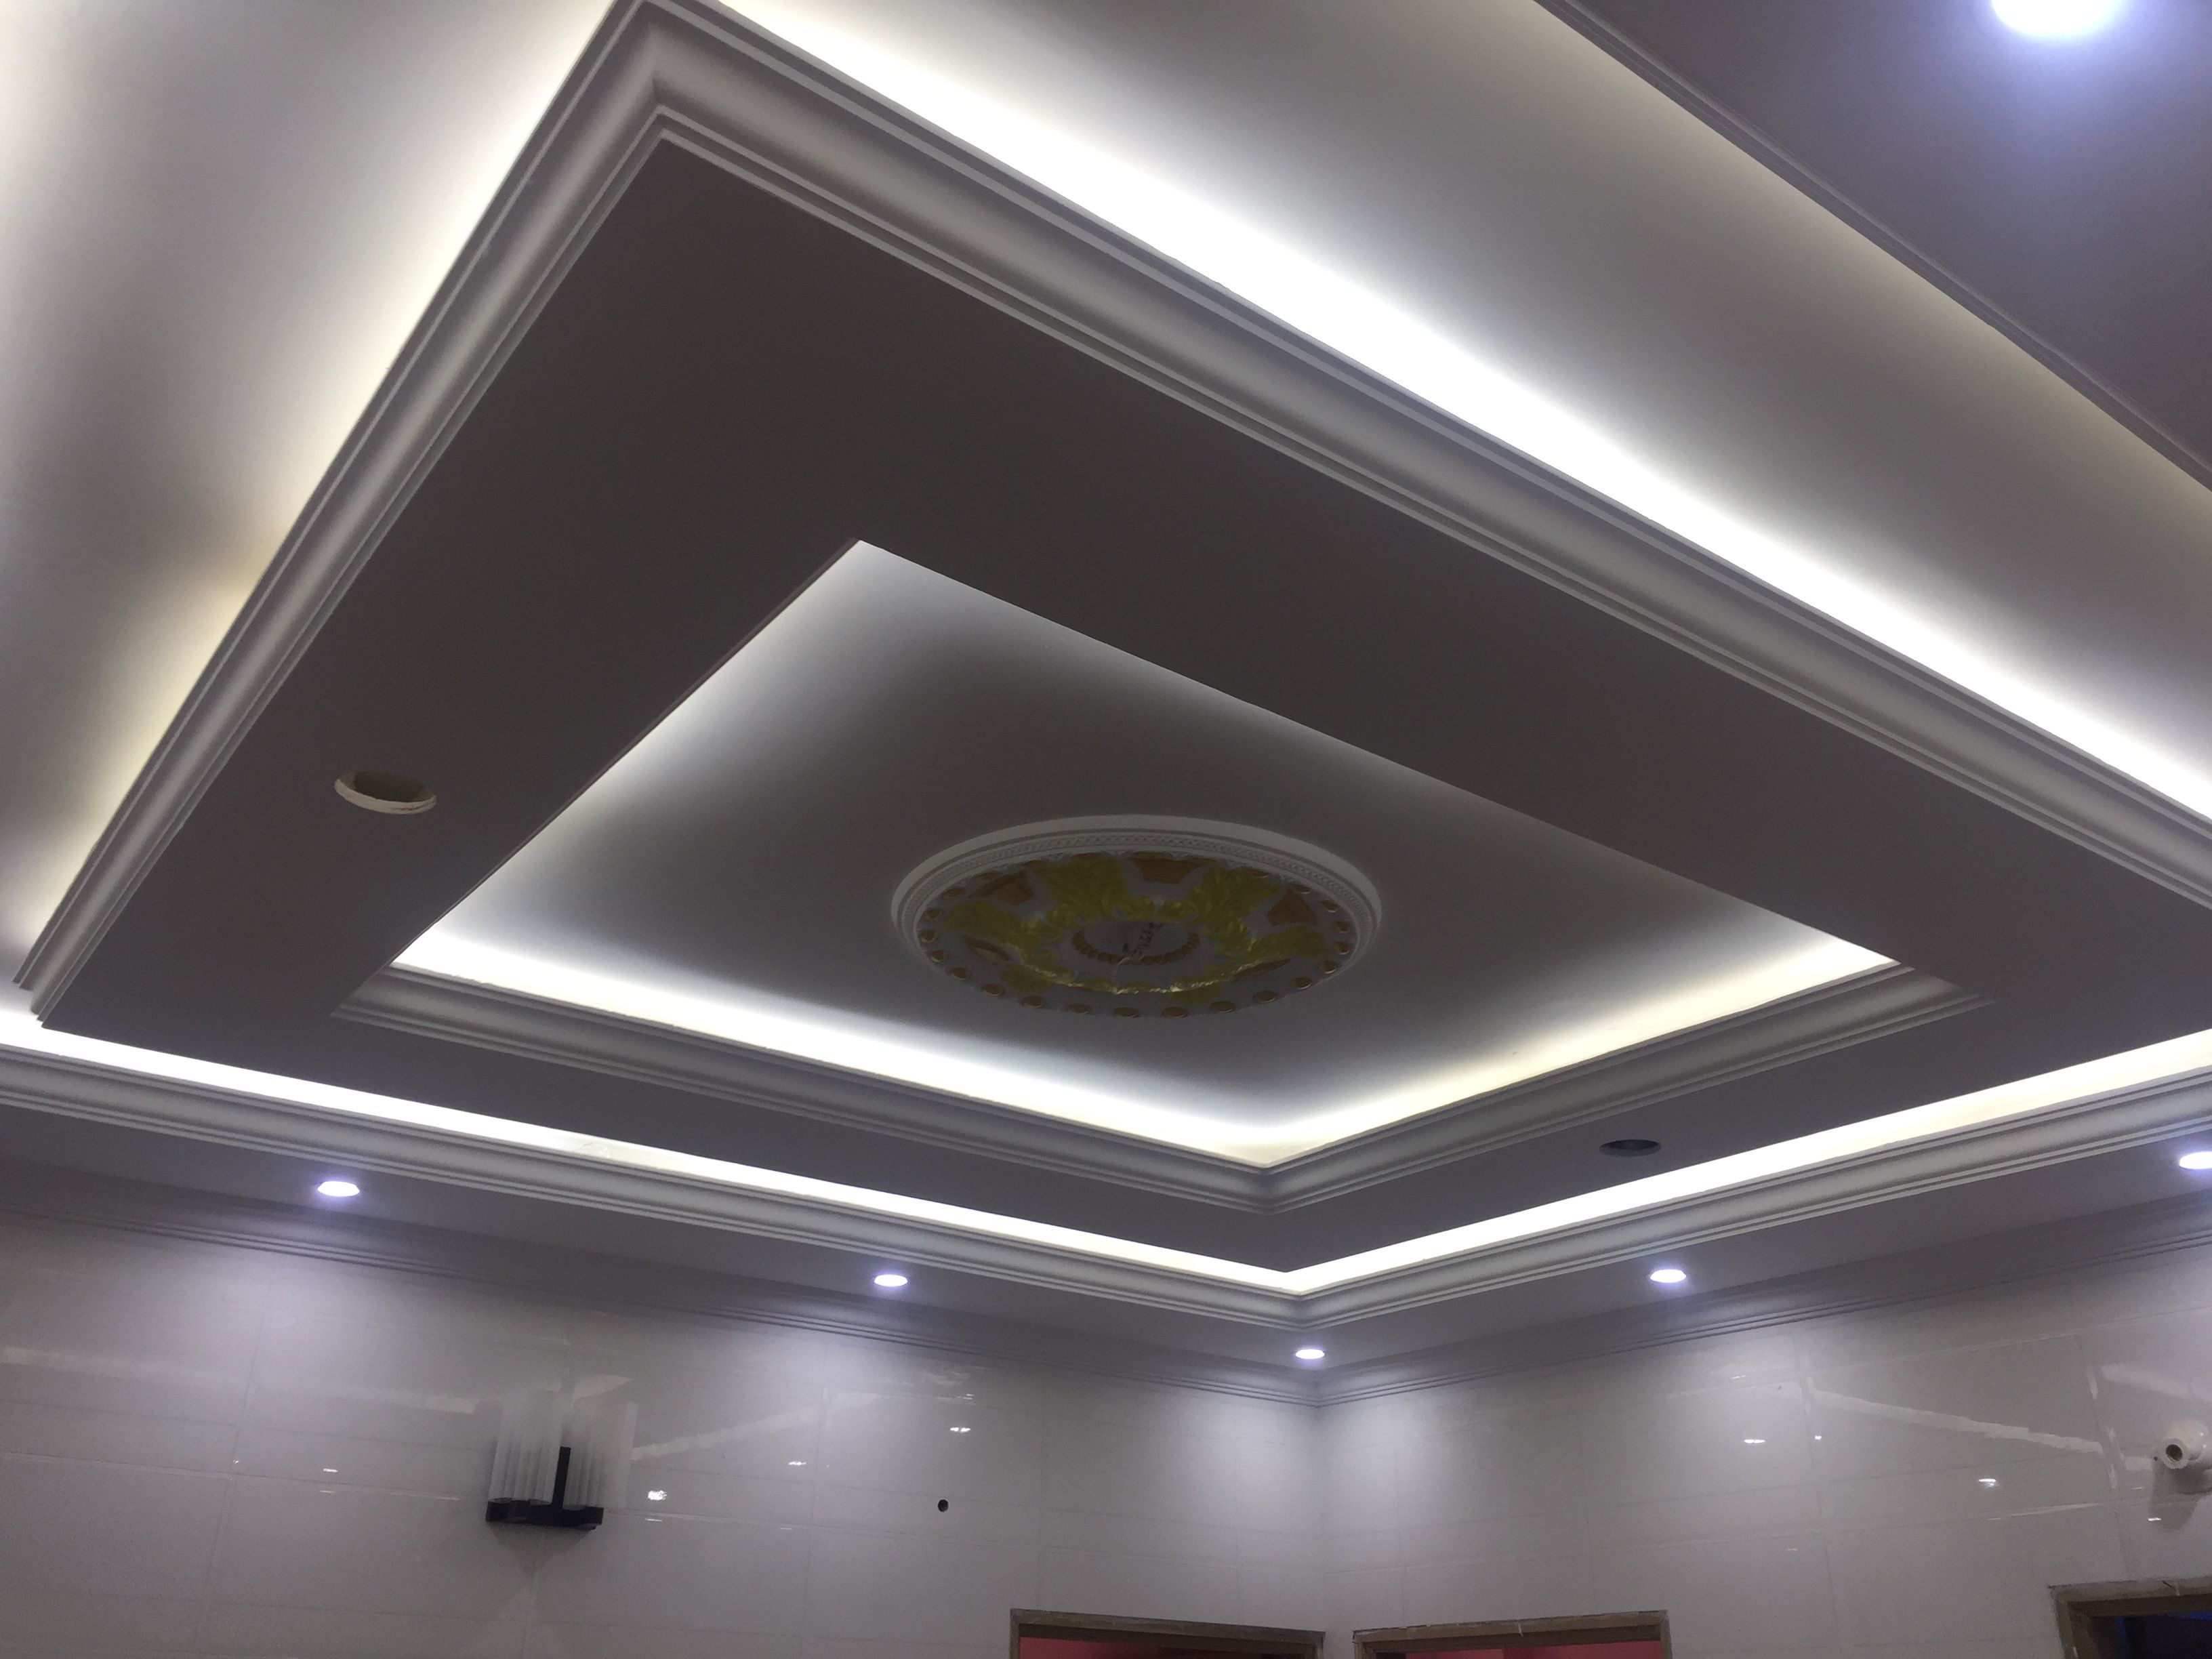 Led False Ceiling Lights For Living Room Led Strip Lighting Ideas In The Interior Nova Gypsum Decorati Ceiling Light Design False Ceiling False Ceiling Design